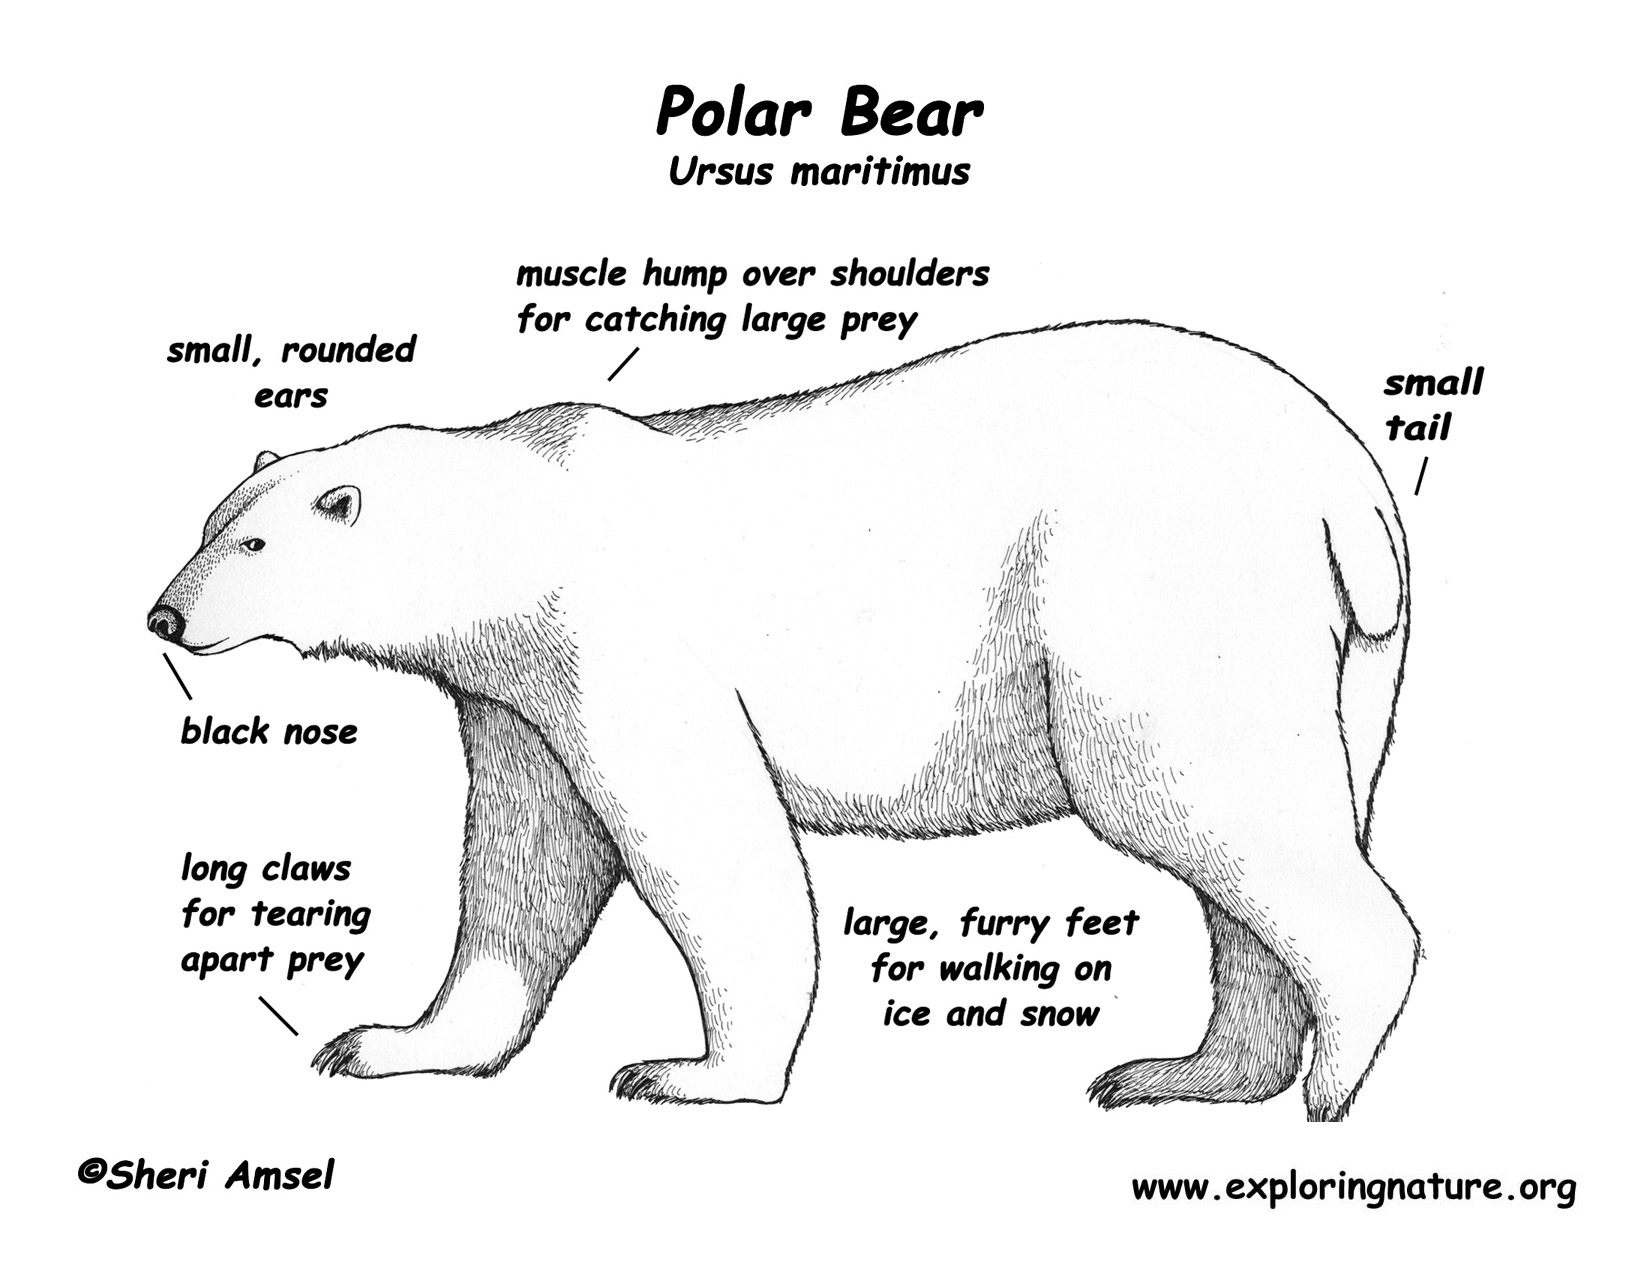 brown bear diagram electric desk fan wiring of a map showing the five andean countries where hight resolution schema diagrams labeled polar bears